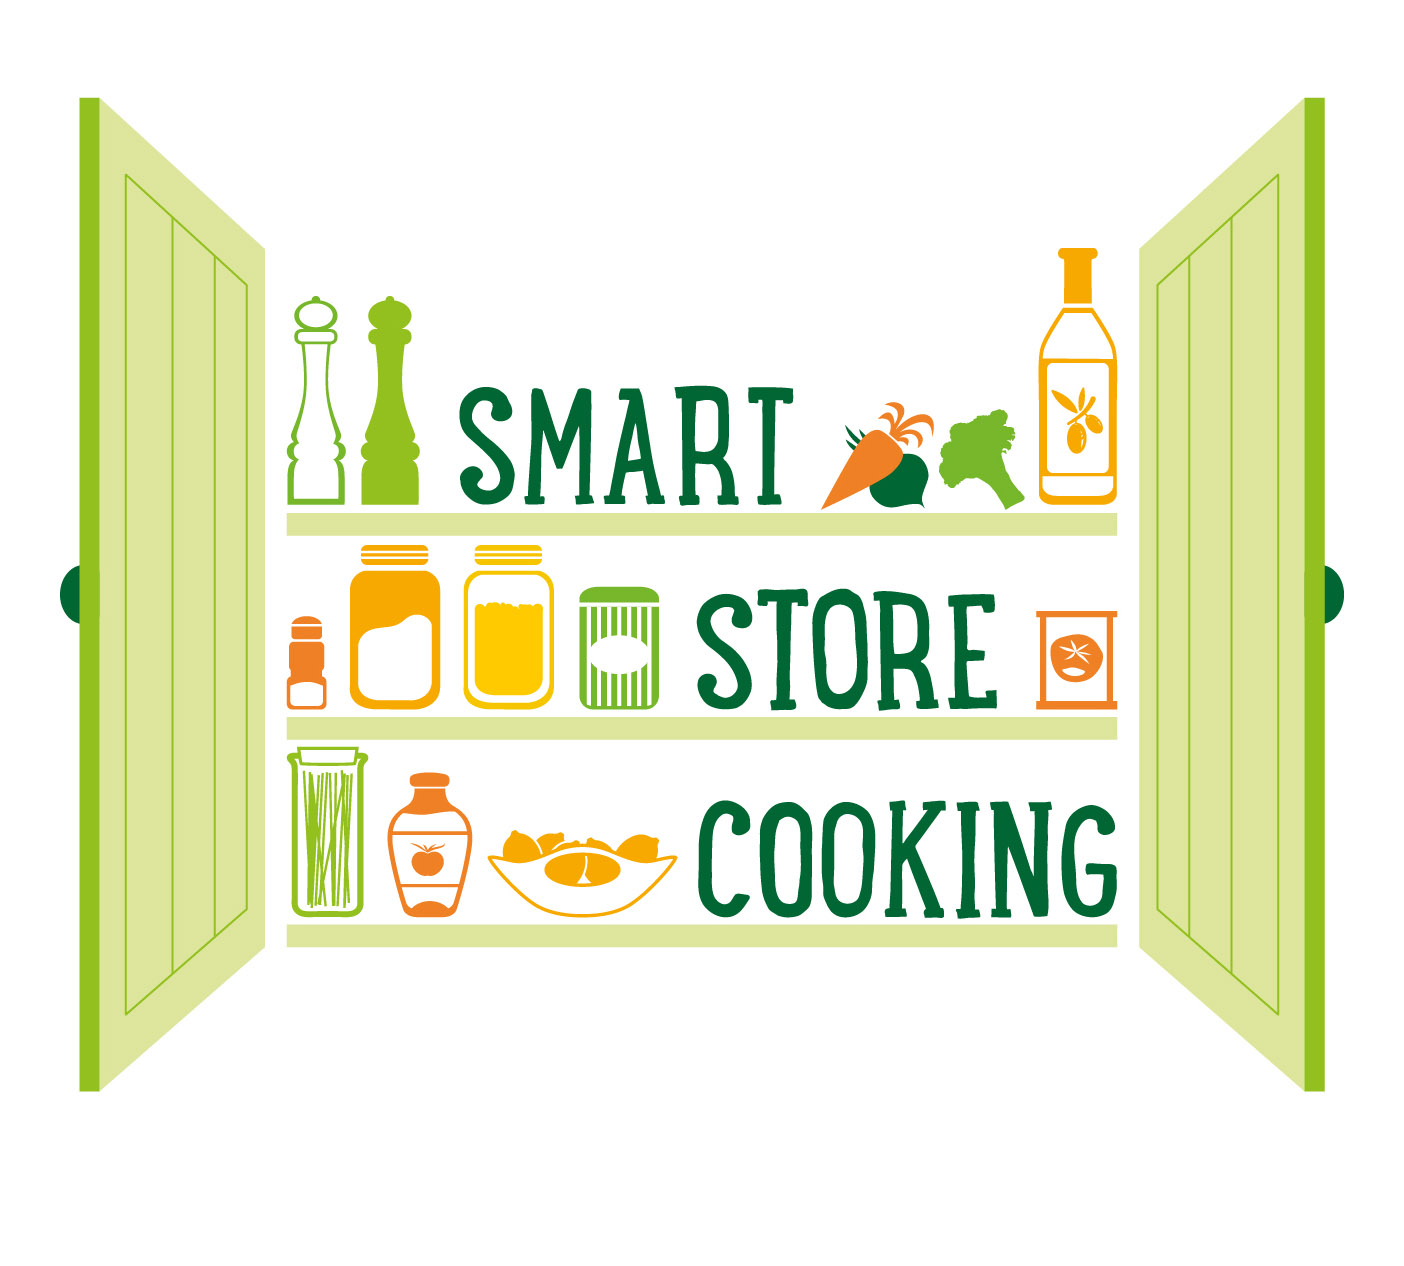 Smart Store Cooking